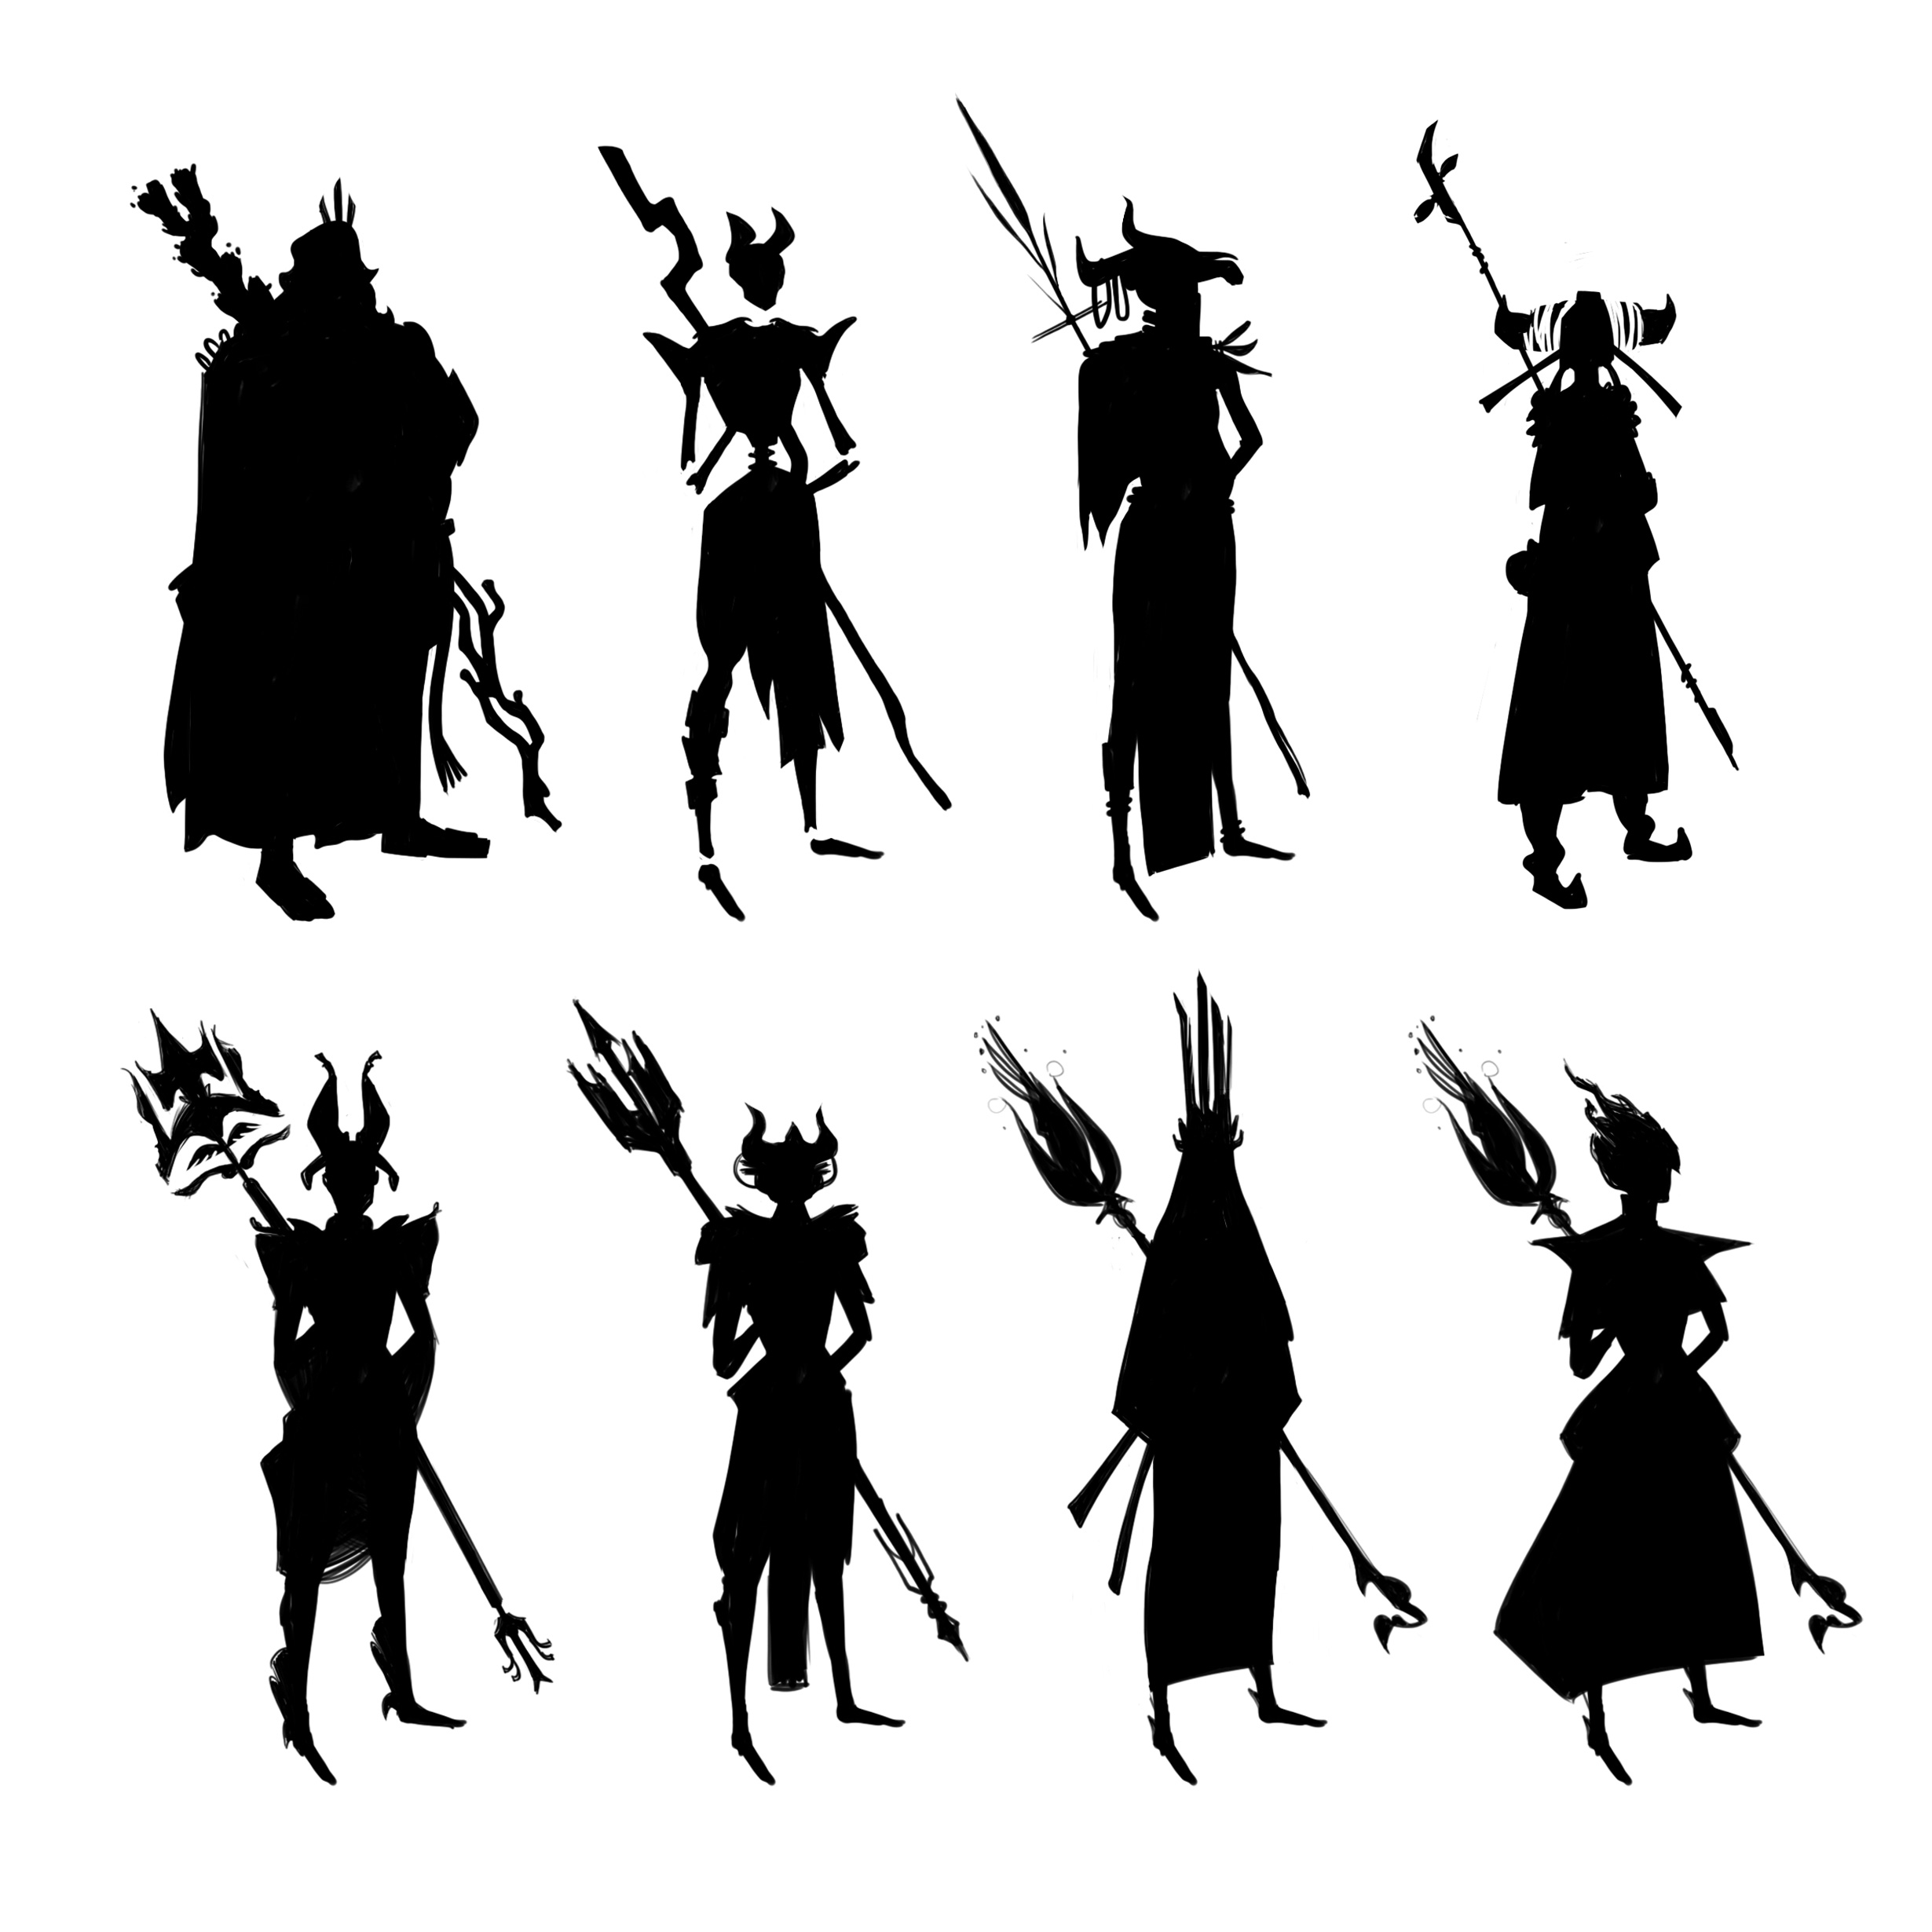 character-silhouettes-01.jpg